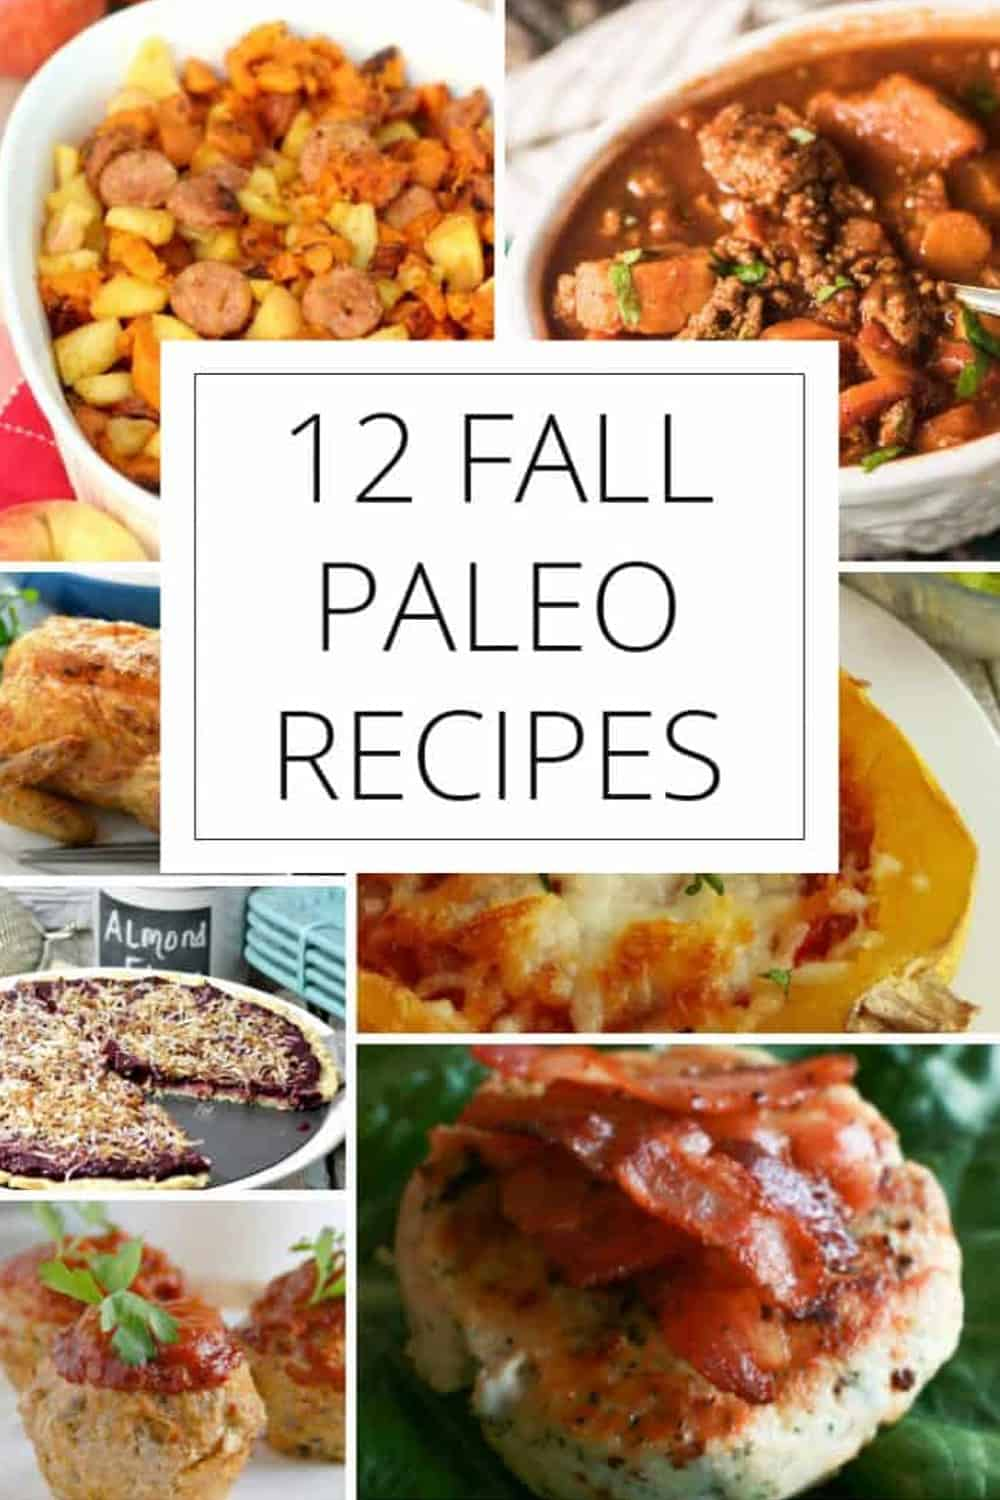 12 Fall Paleo Recipes to Try for Thanksgiving & Beyond